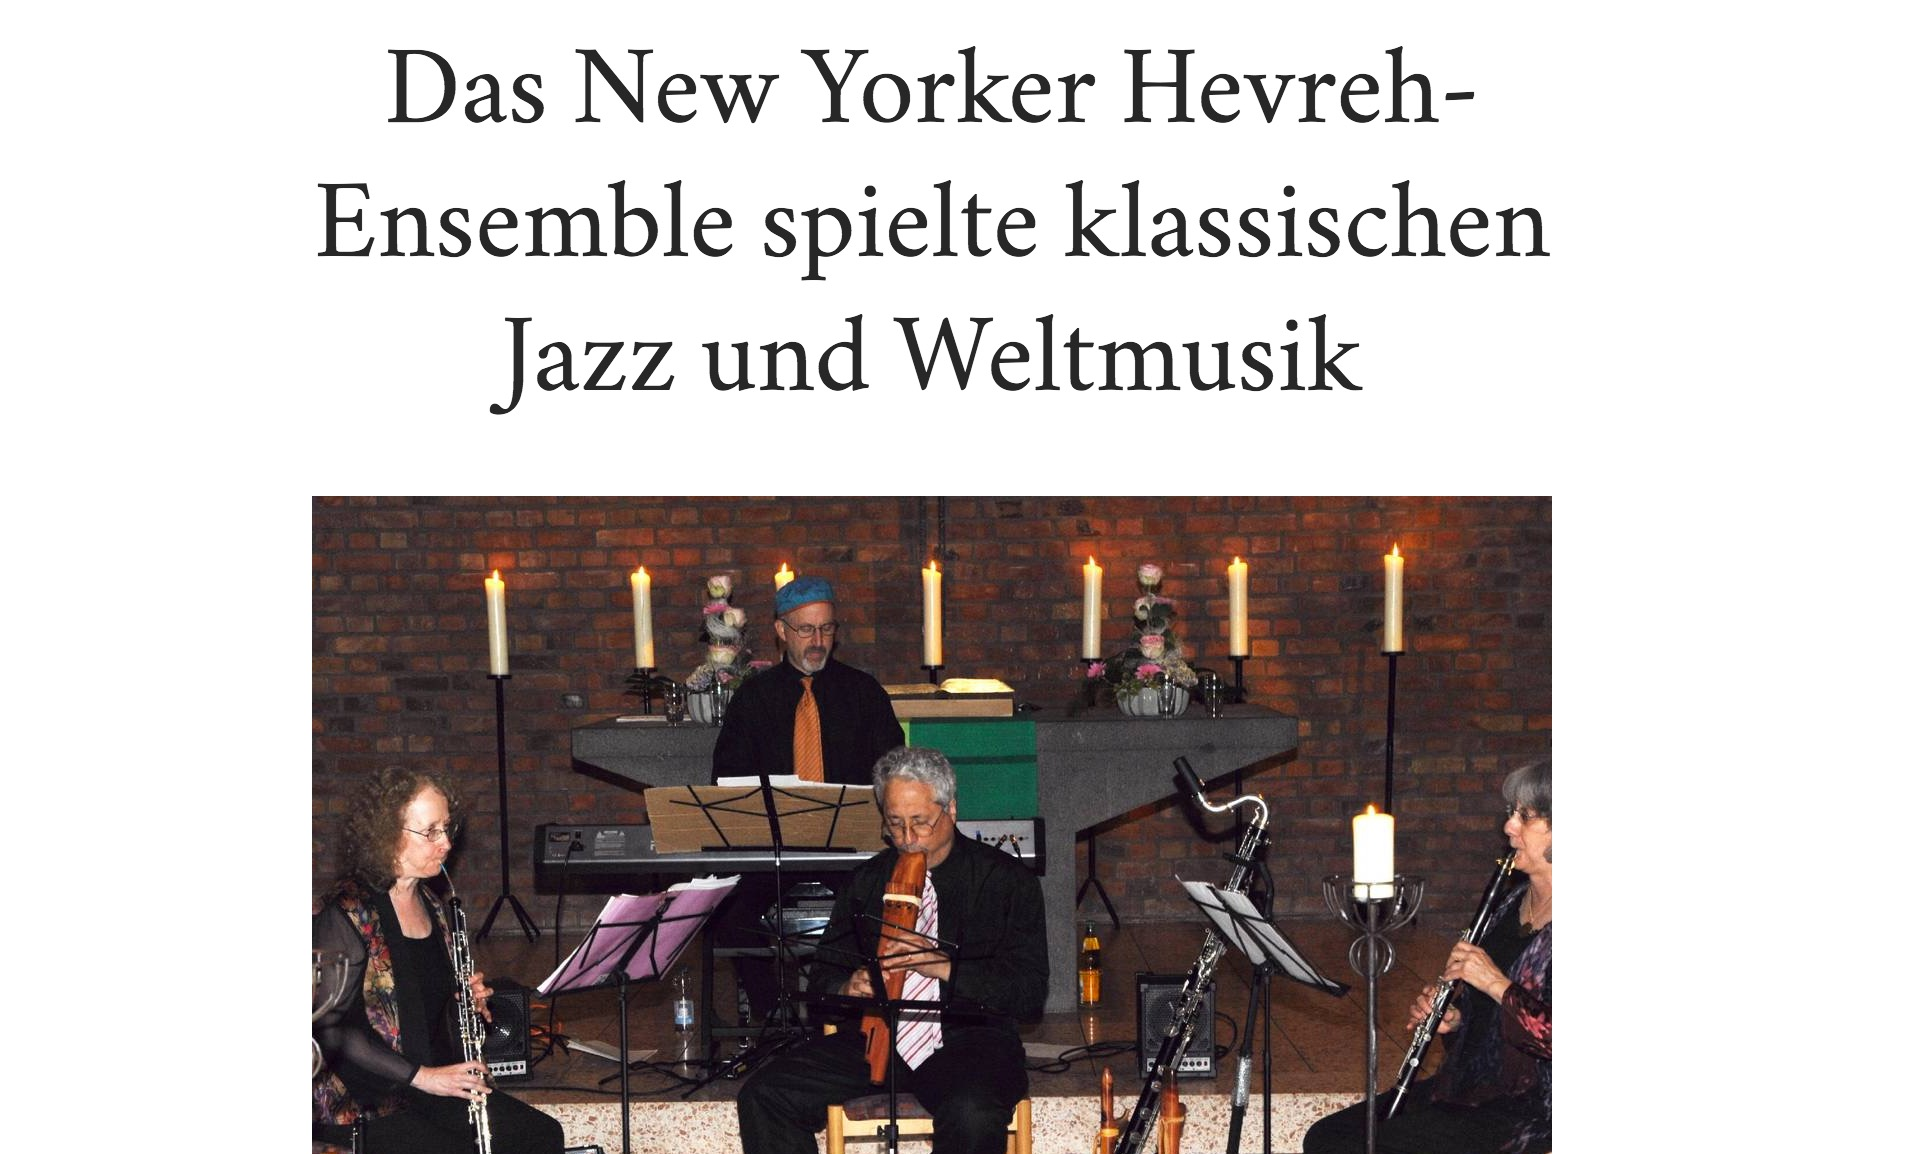 General Anzeiger - Bonn, GermanyConcert Review, August 2013